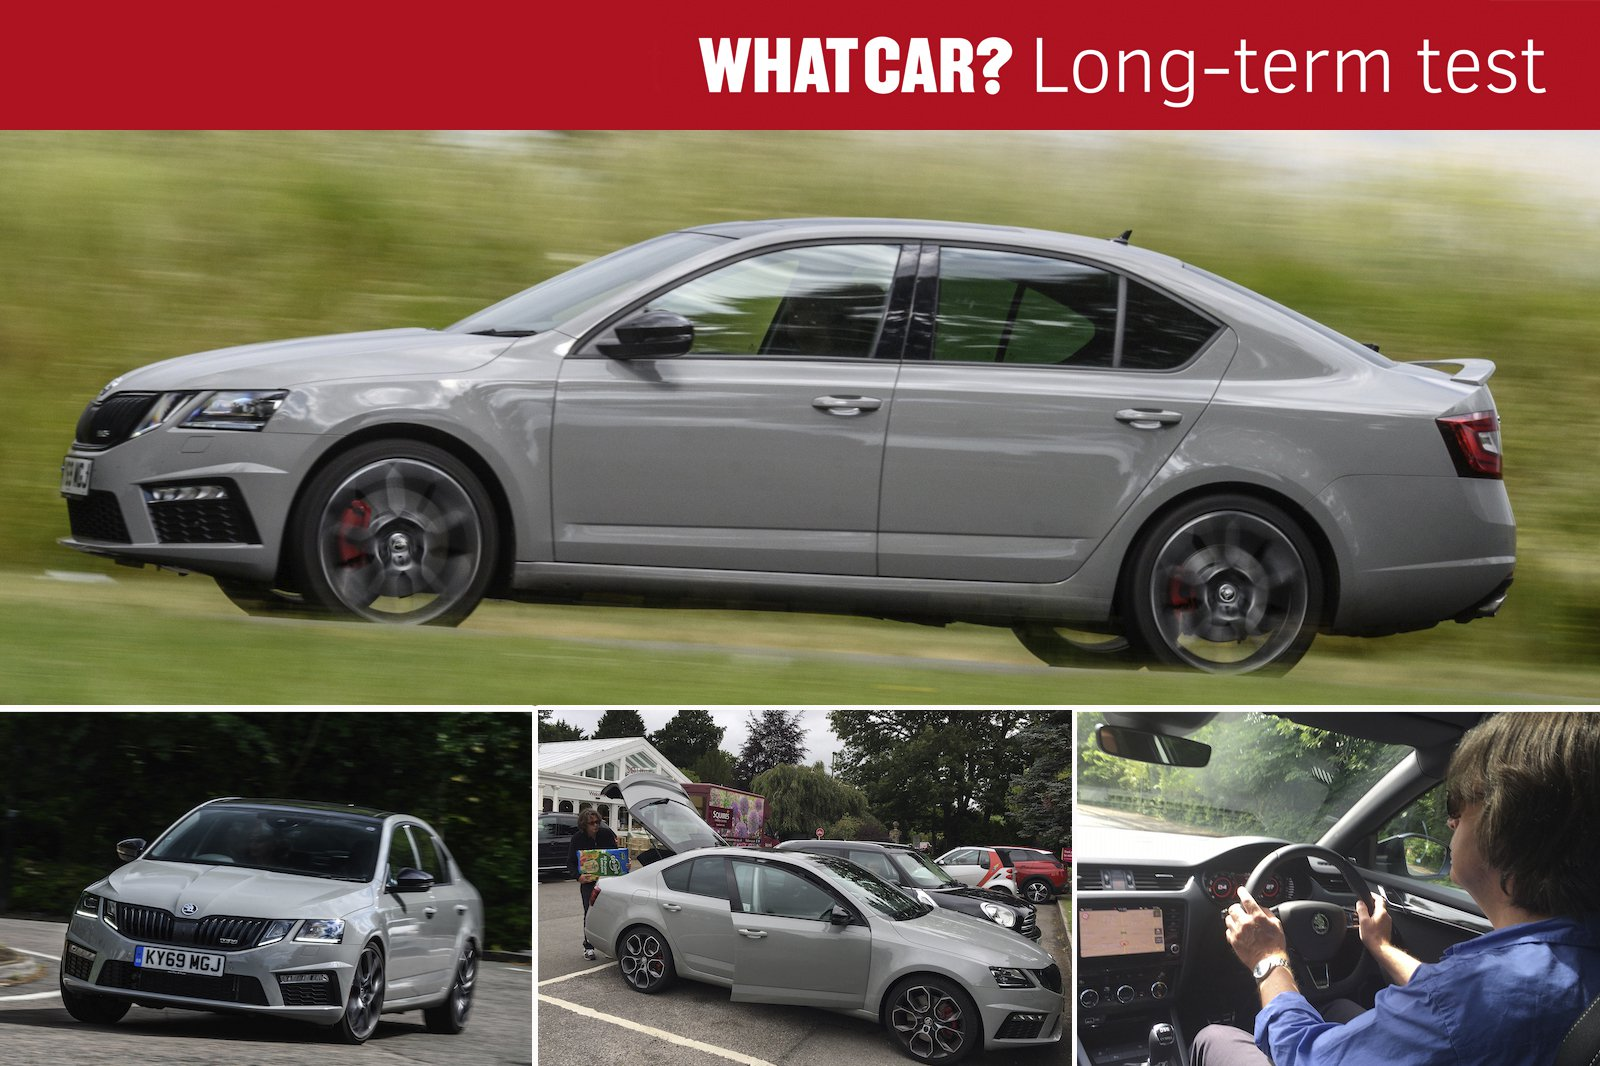 Used Skoda Octavia vRS long-term test review